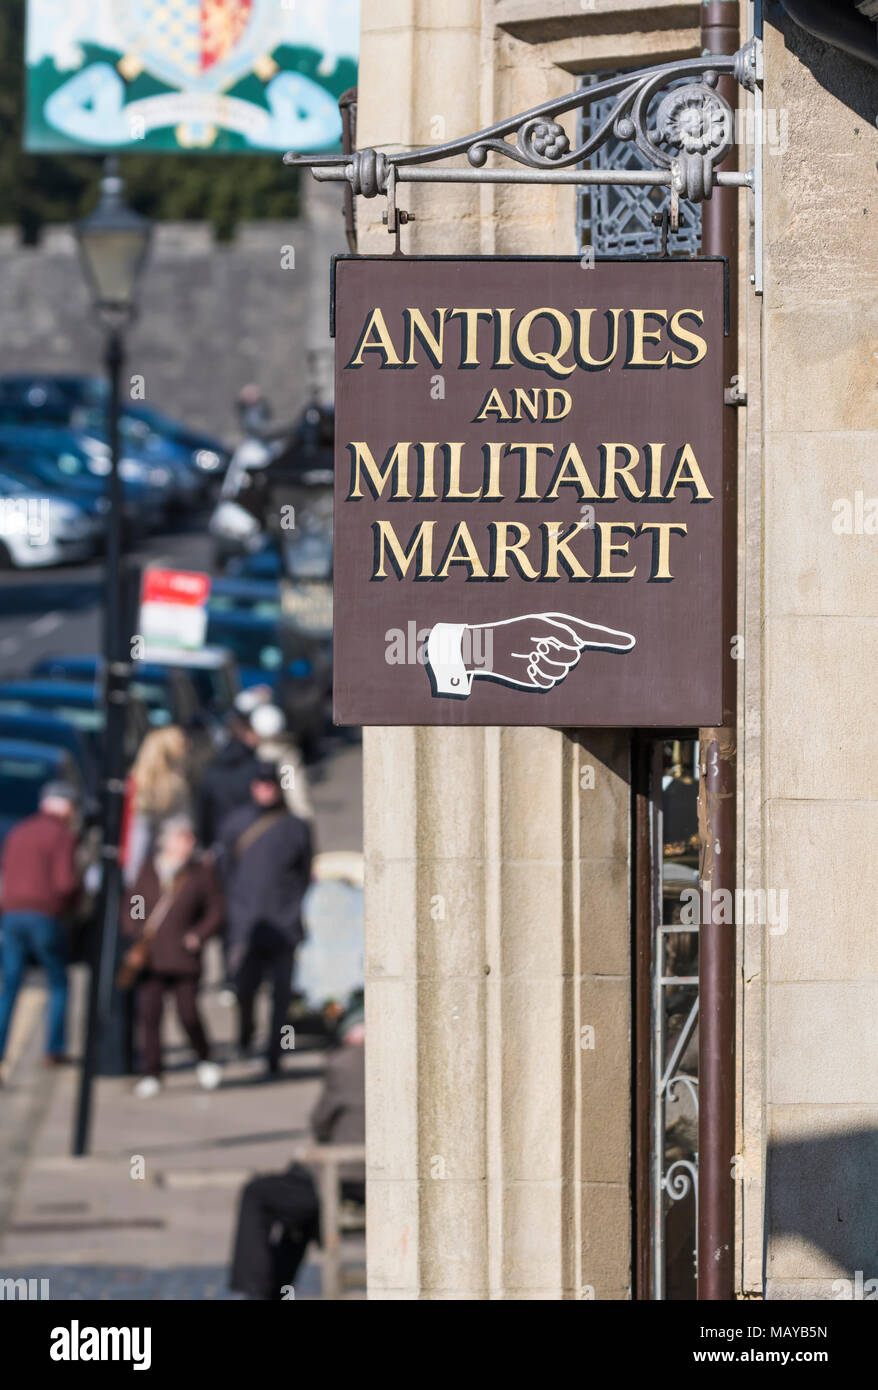 Hanging sign pointing to Antiques and Militaria Market in Arundel, West Sussex, England, UK. - Stock Image